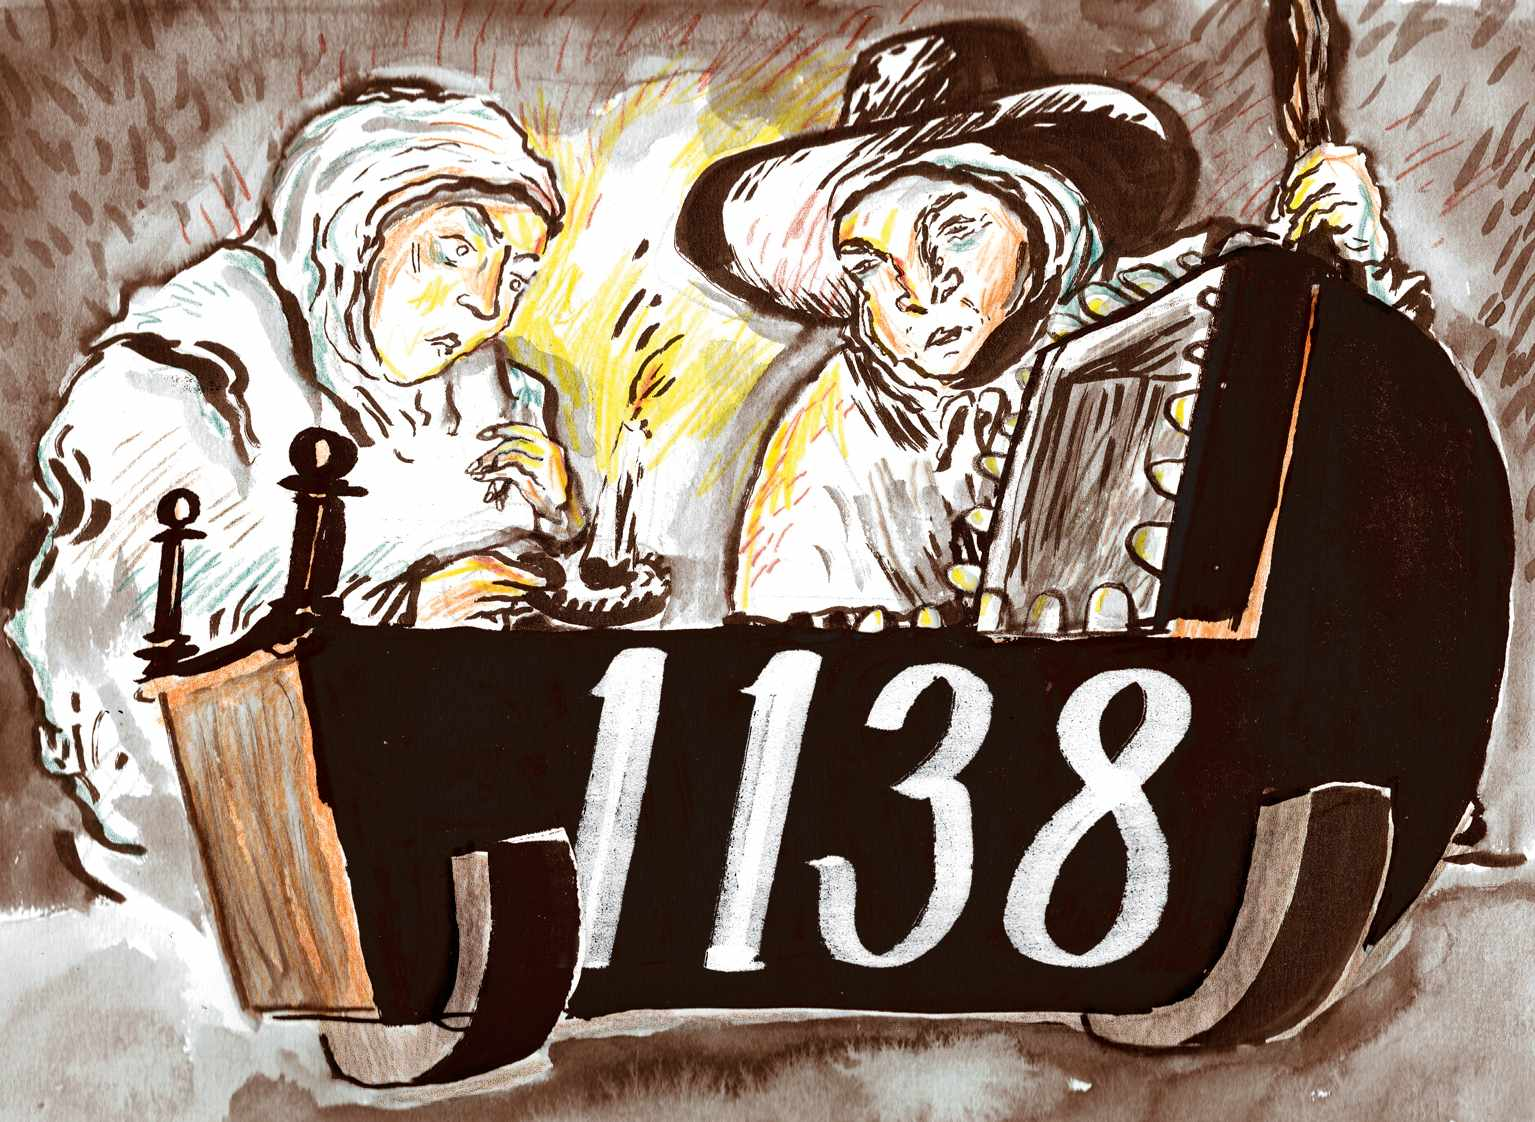 """1,138:The number of London children recordedas dying of """"teeth"""" in 1685. (Illustration: James Albon for BBC History Magazine)"""